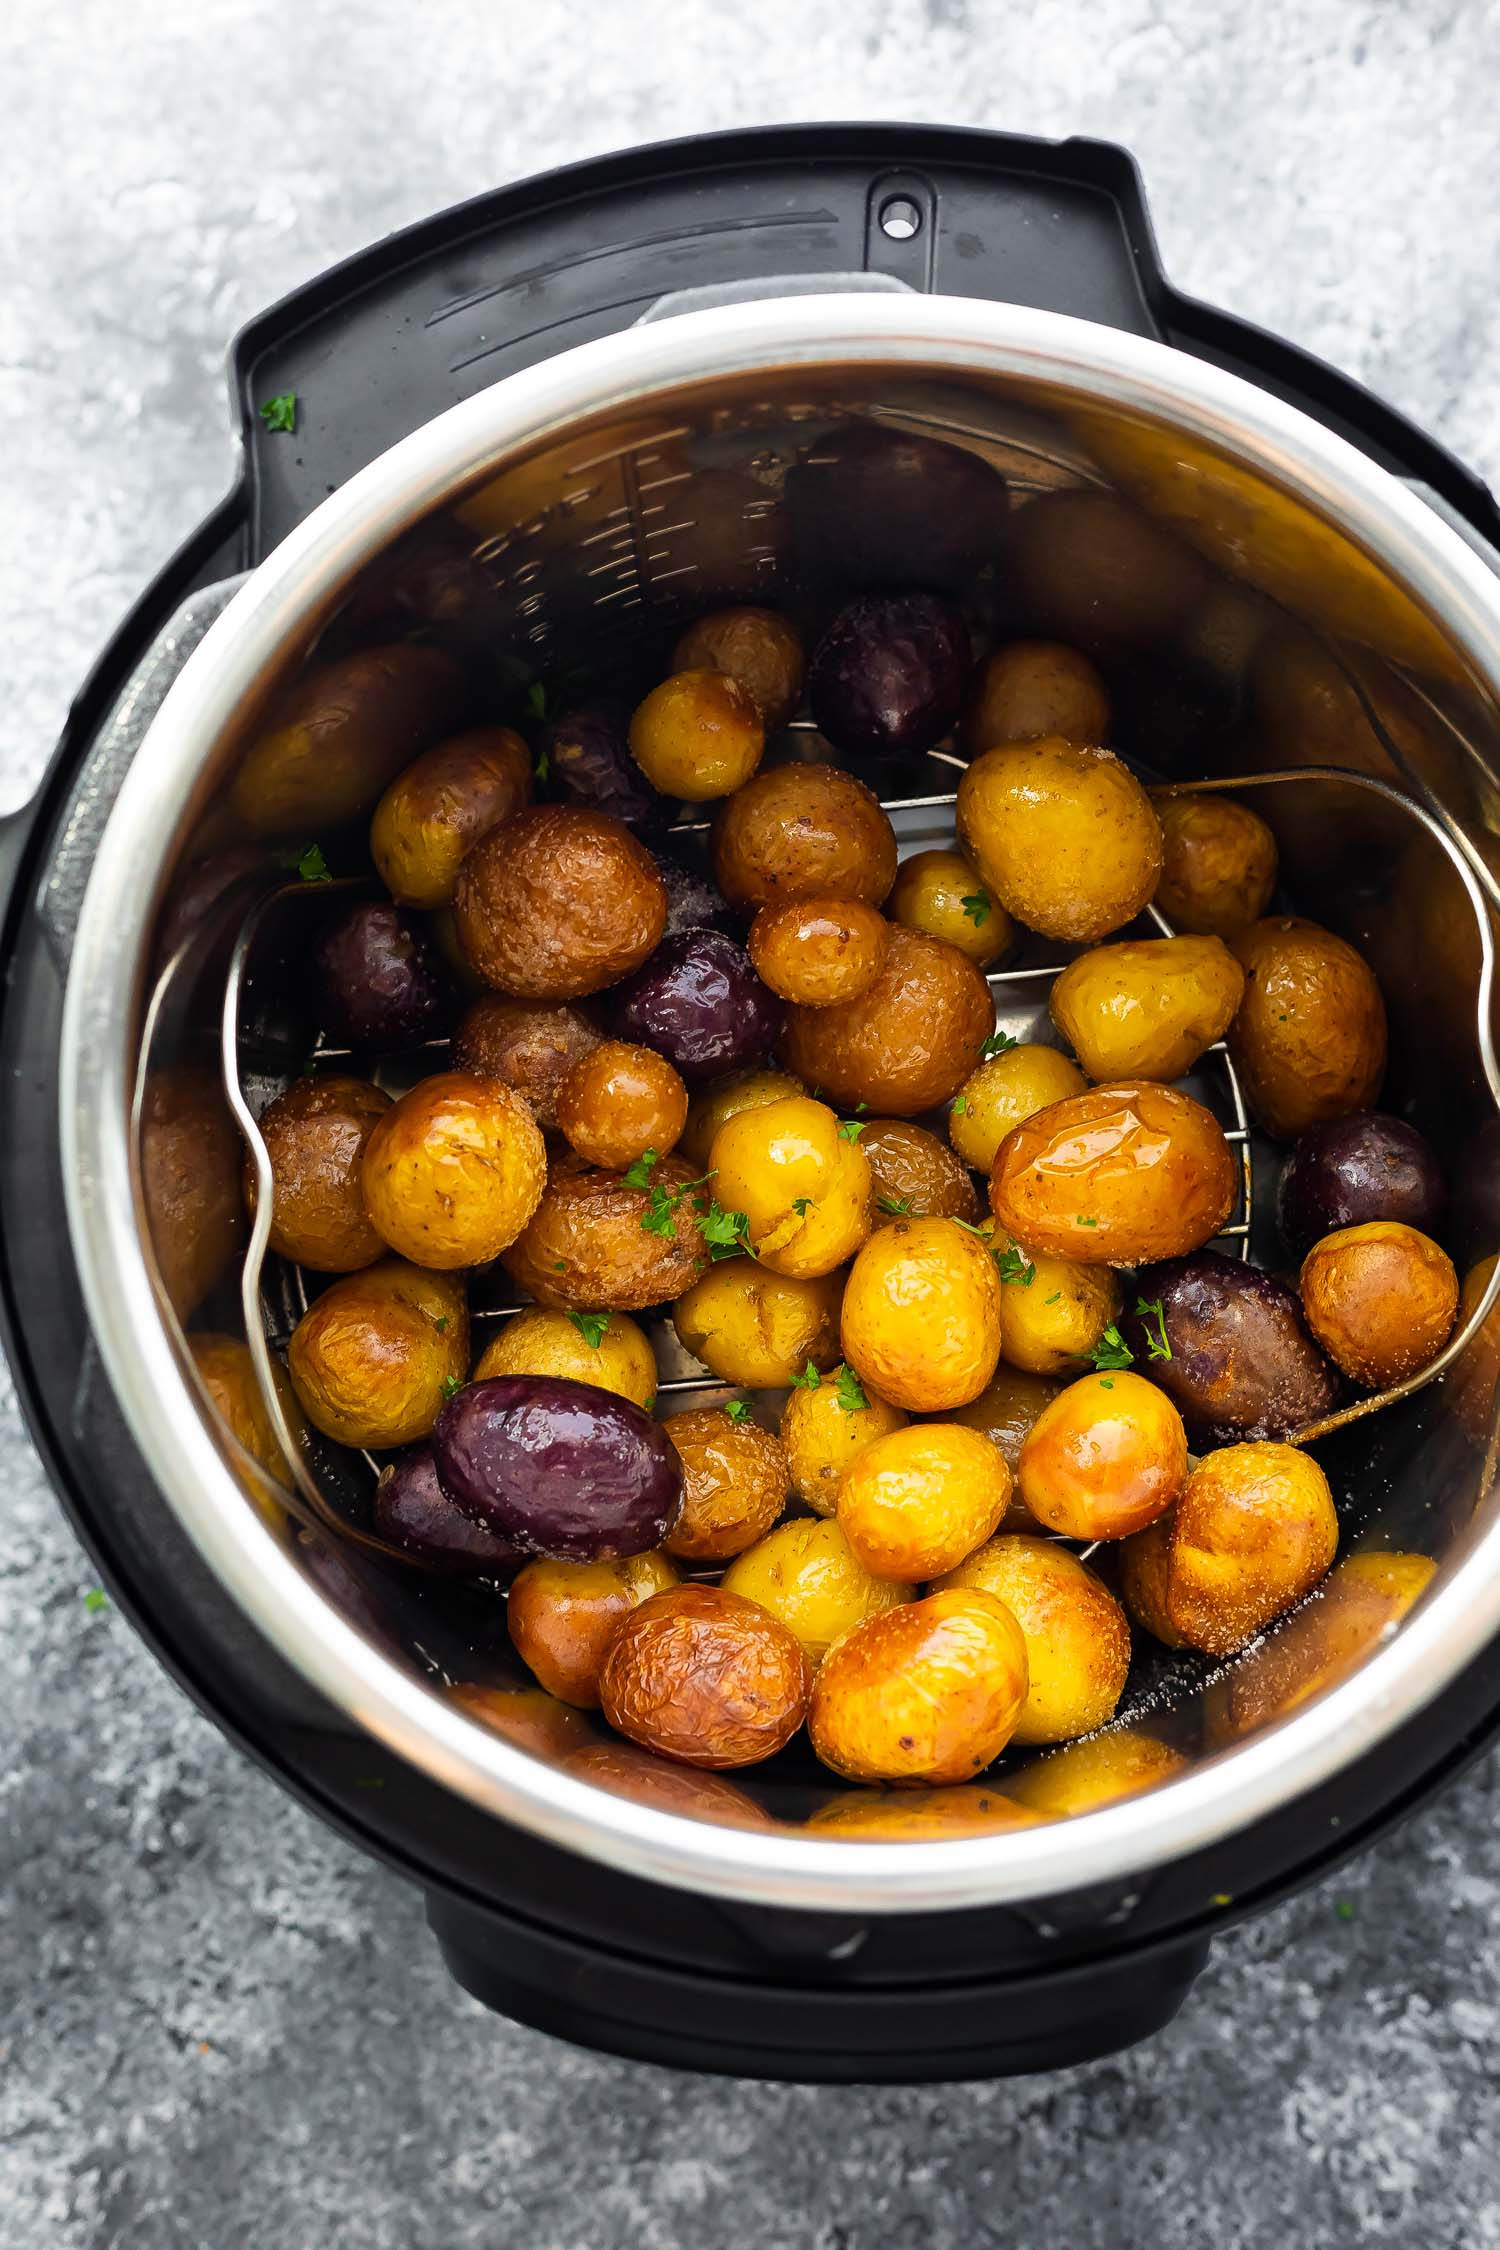 overhead view of baby potatoes in instant pot after cooking and air frying